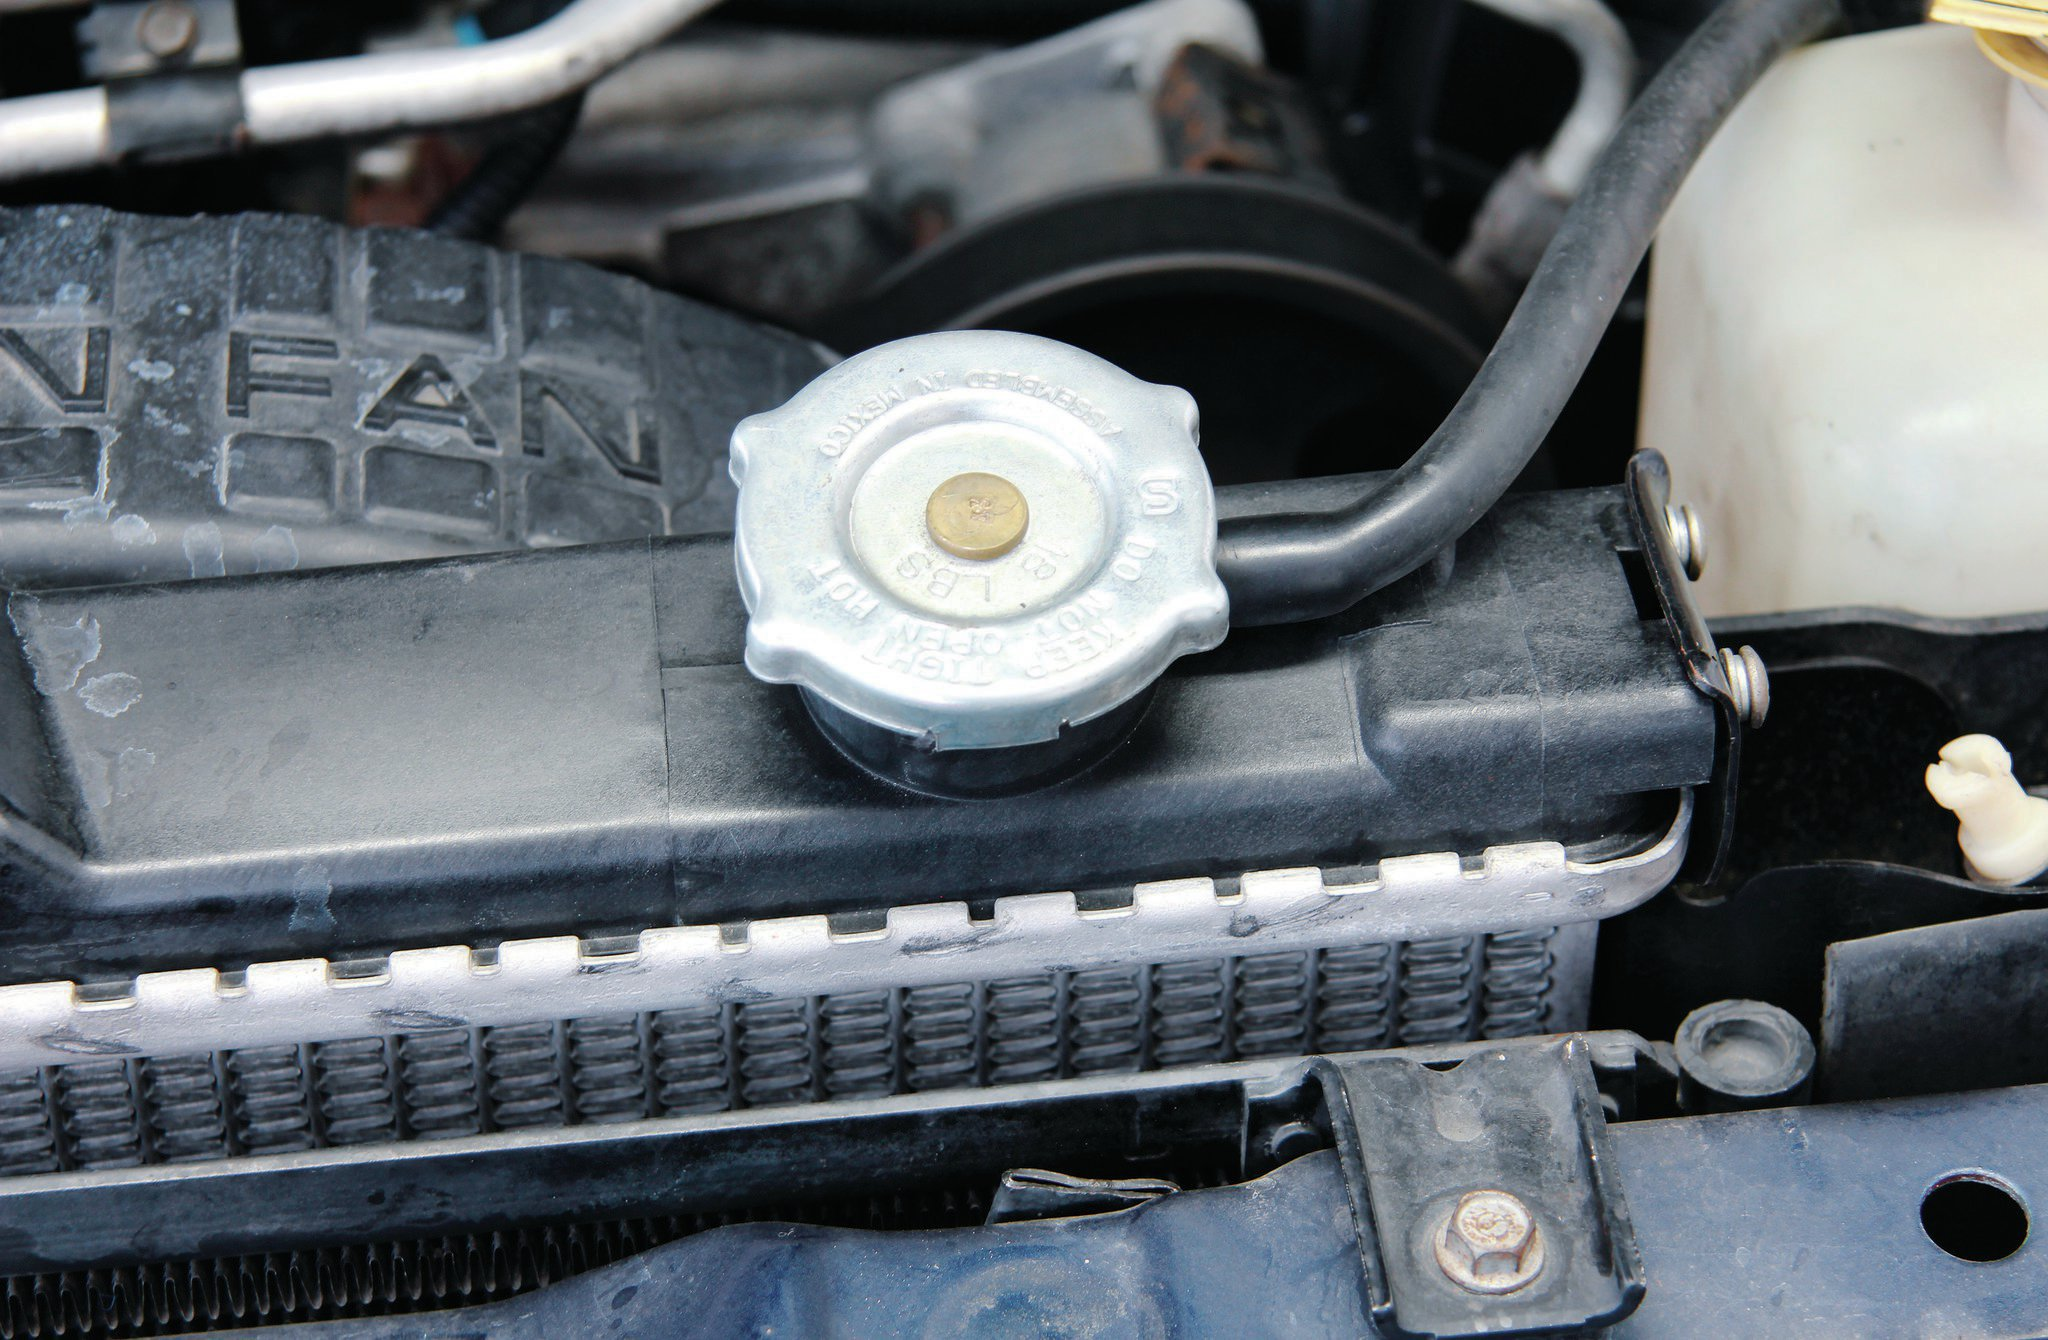 Look at the top of the radiator closely. From the factory, TJs use an aluminum radiator with clamped-on plastic tank caps. These are commonly known to separate and leak. Typically, you'll need to replace the entire radiator when this happens.